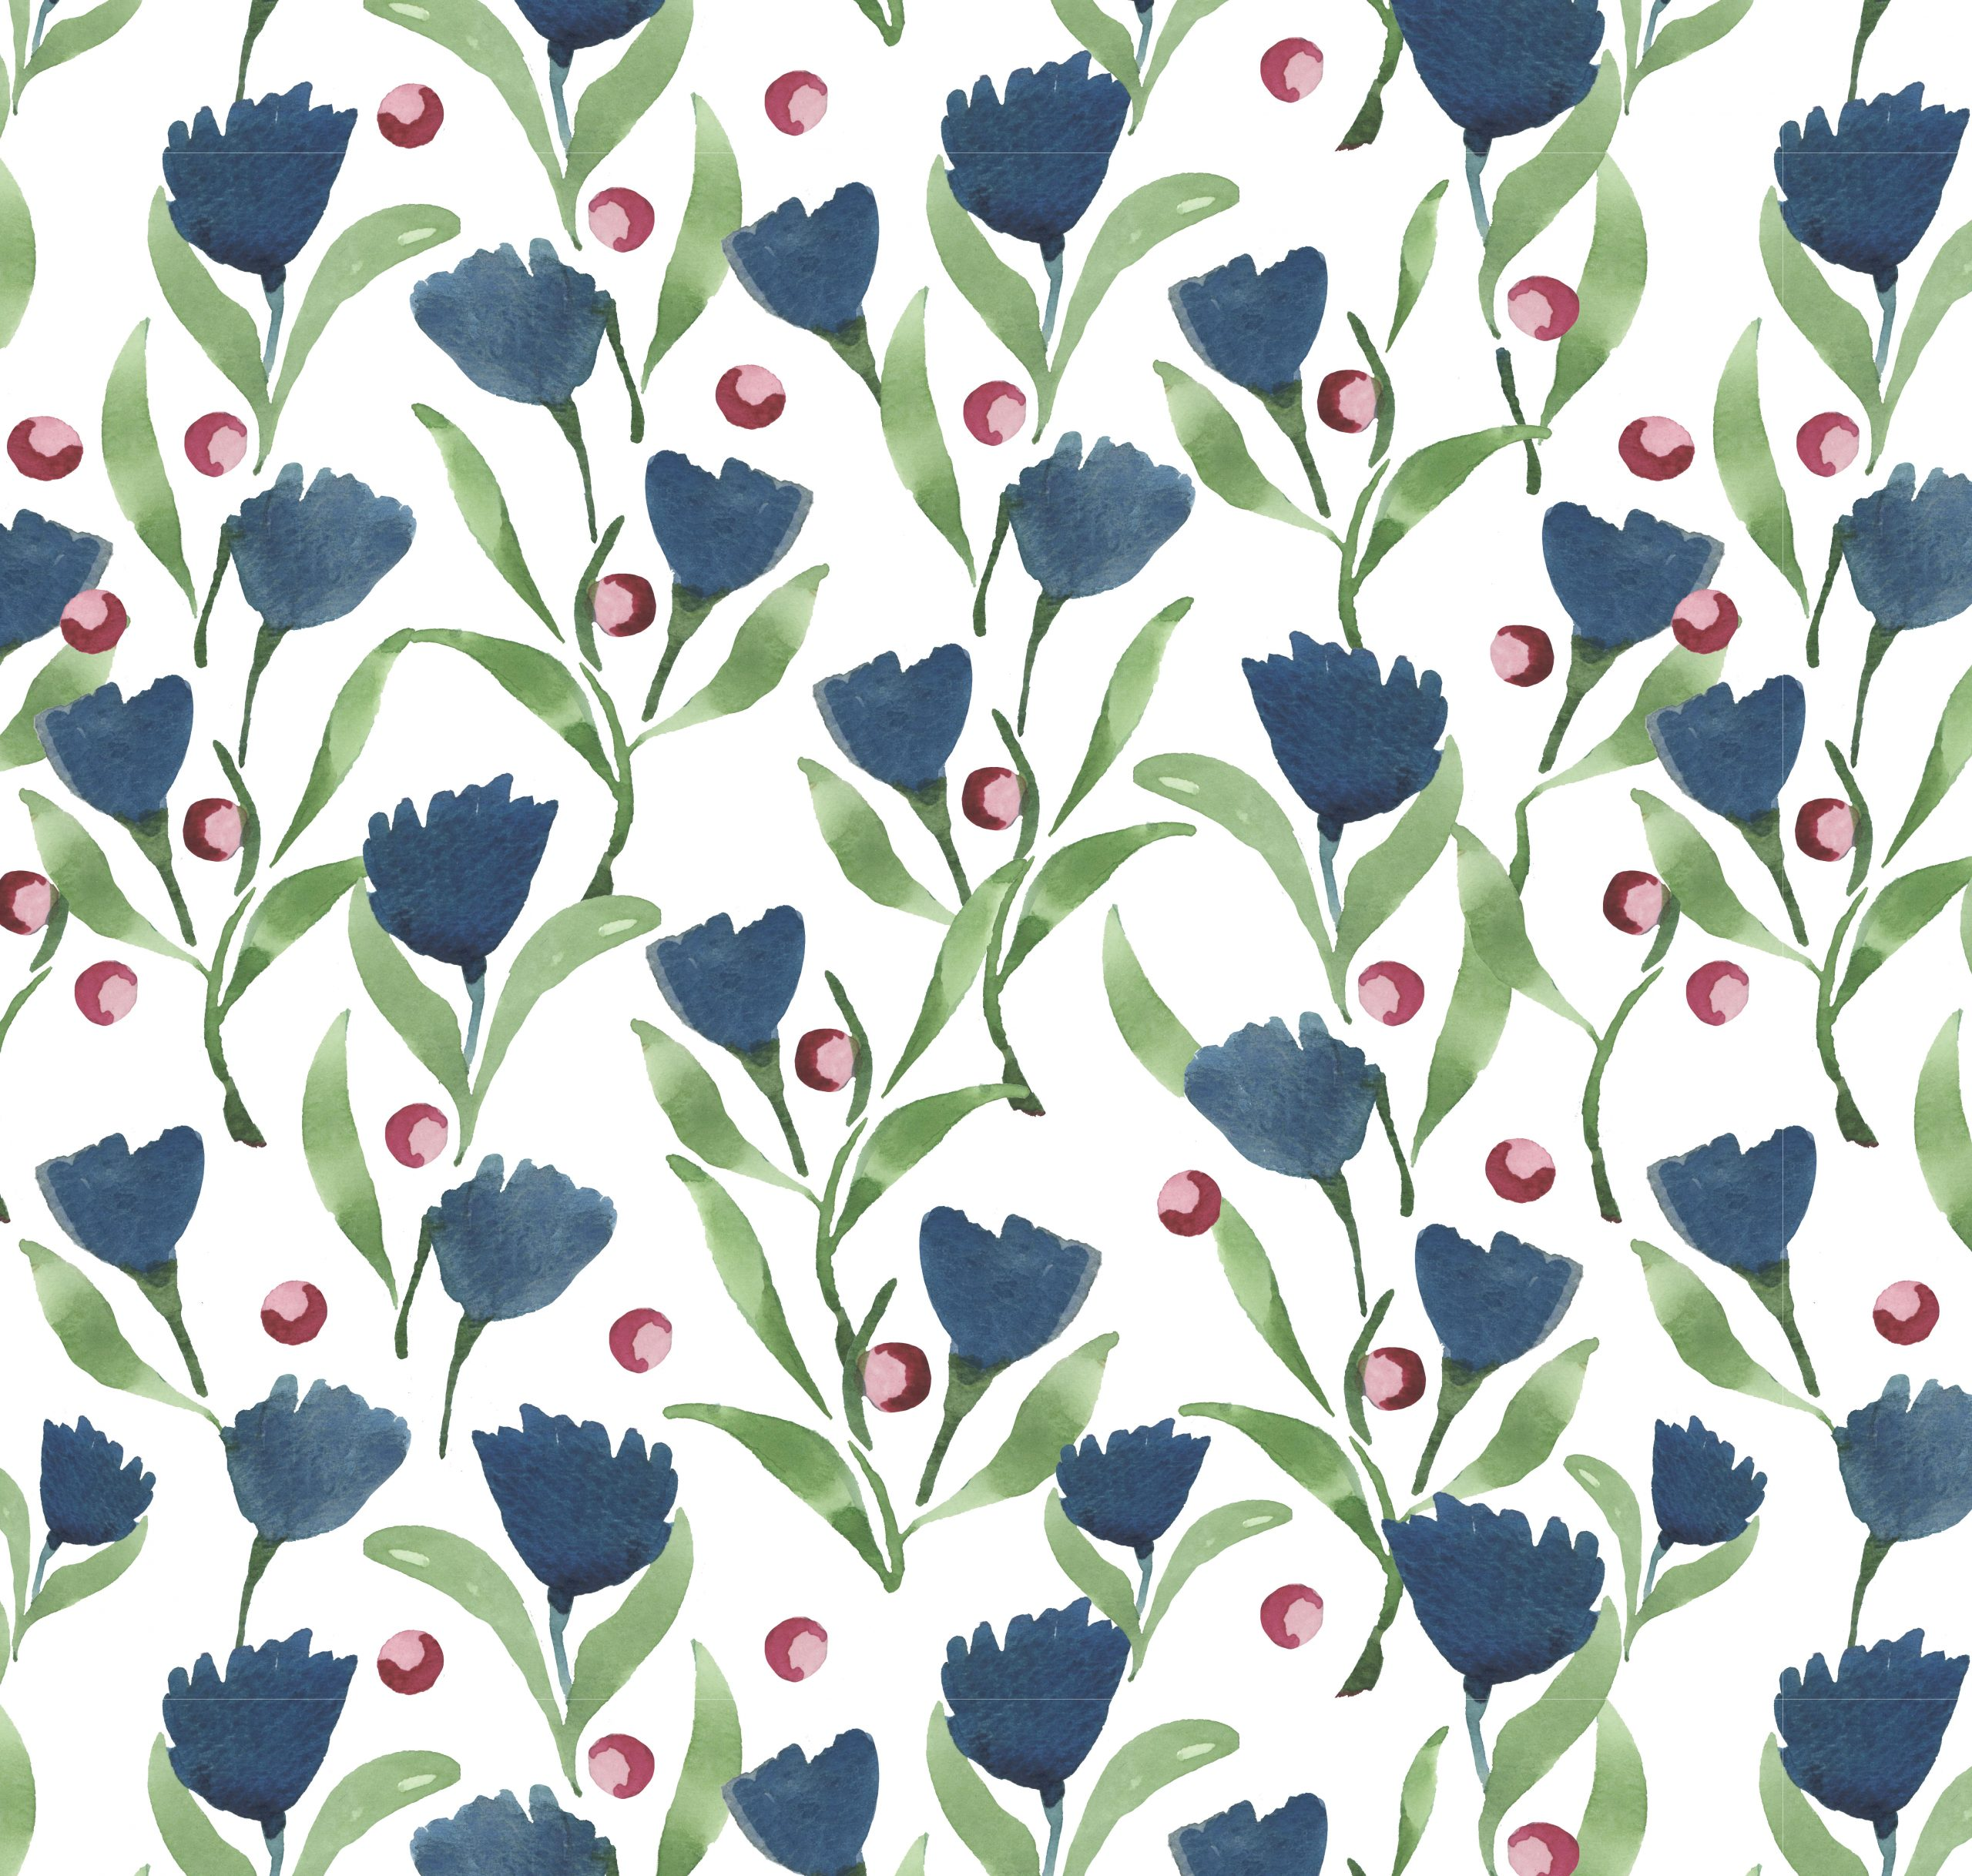 blue flowers print handpainted floral botanical wrapping paper wallpaper fabric